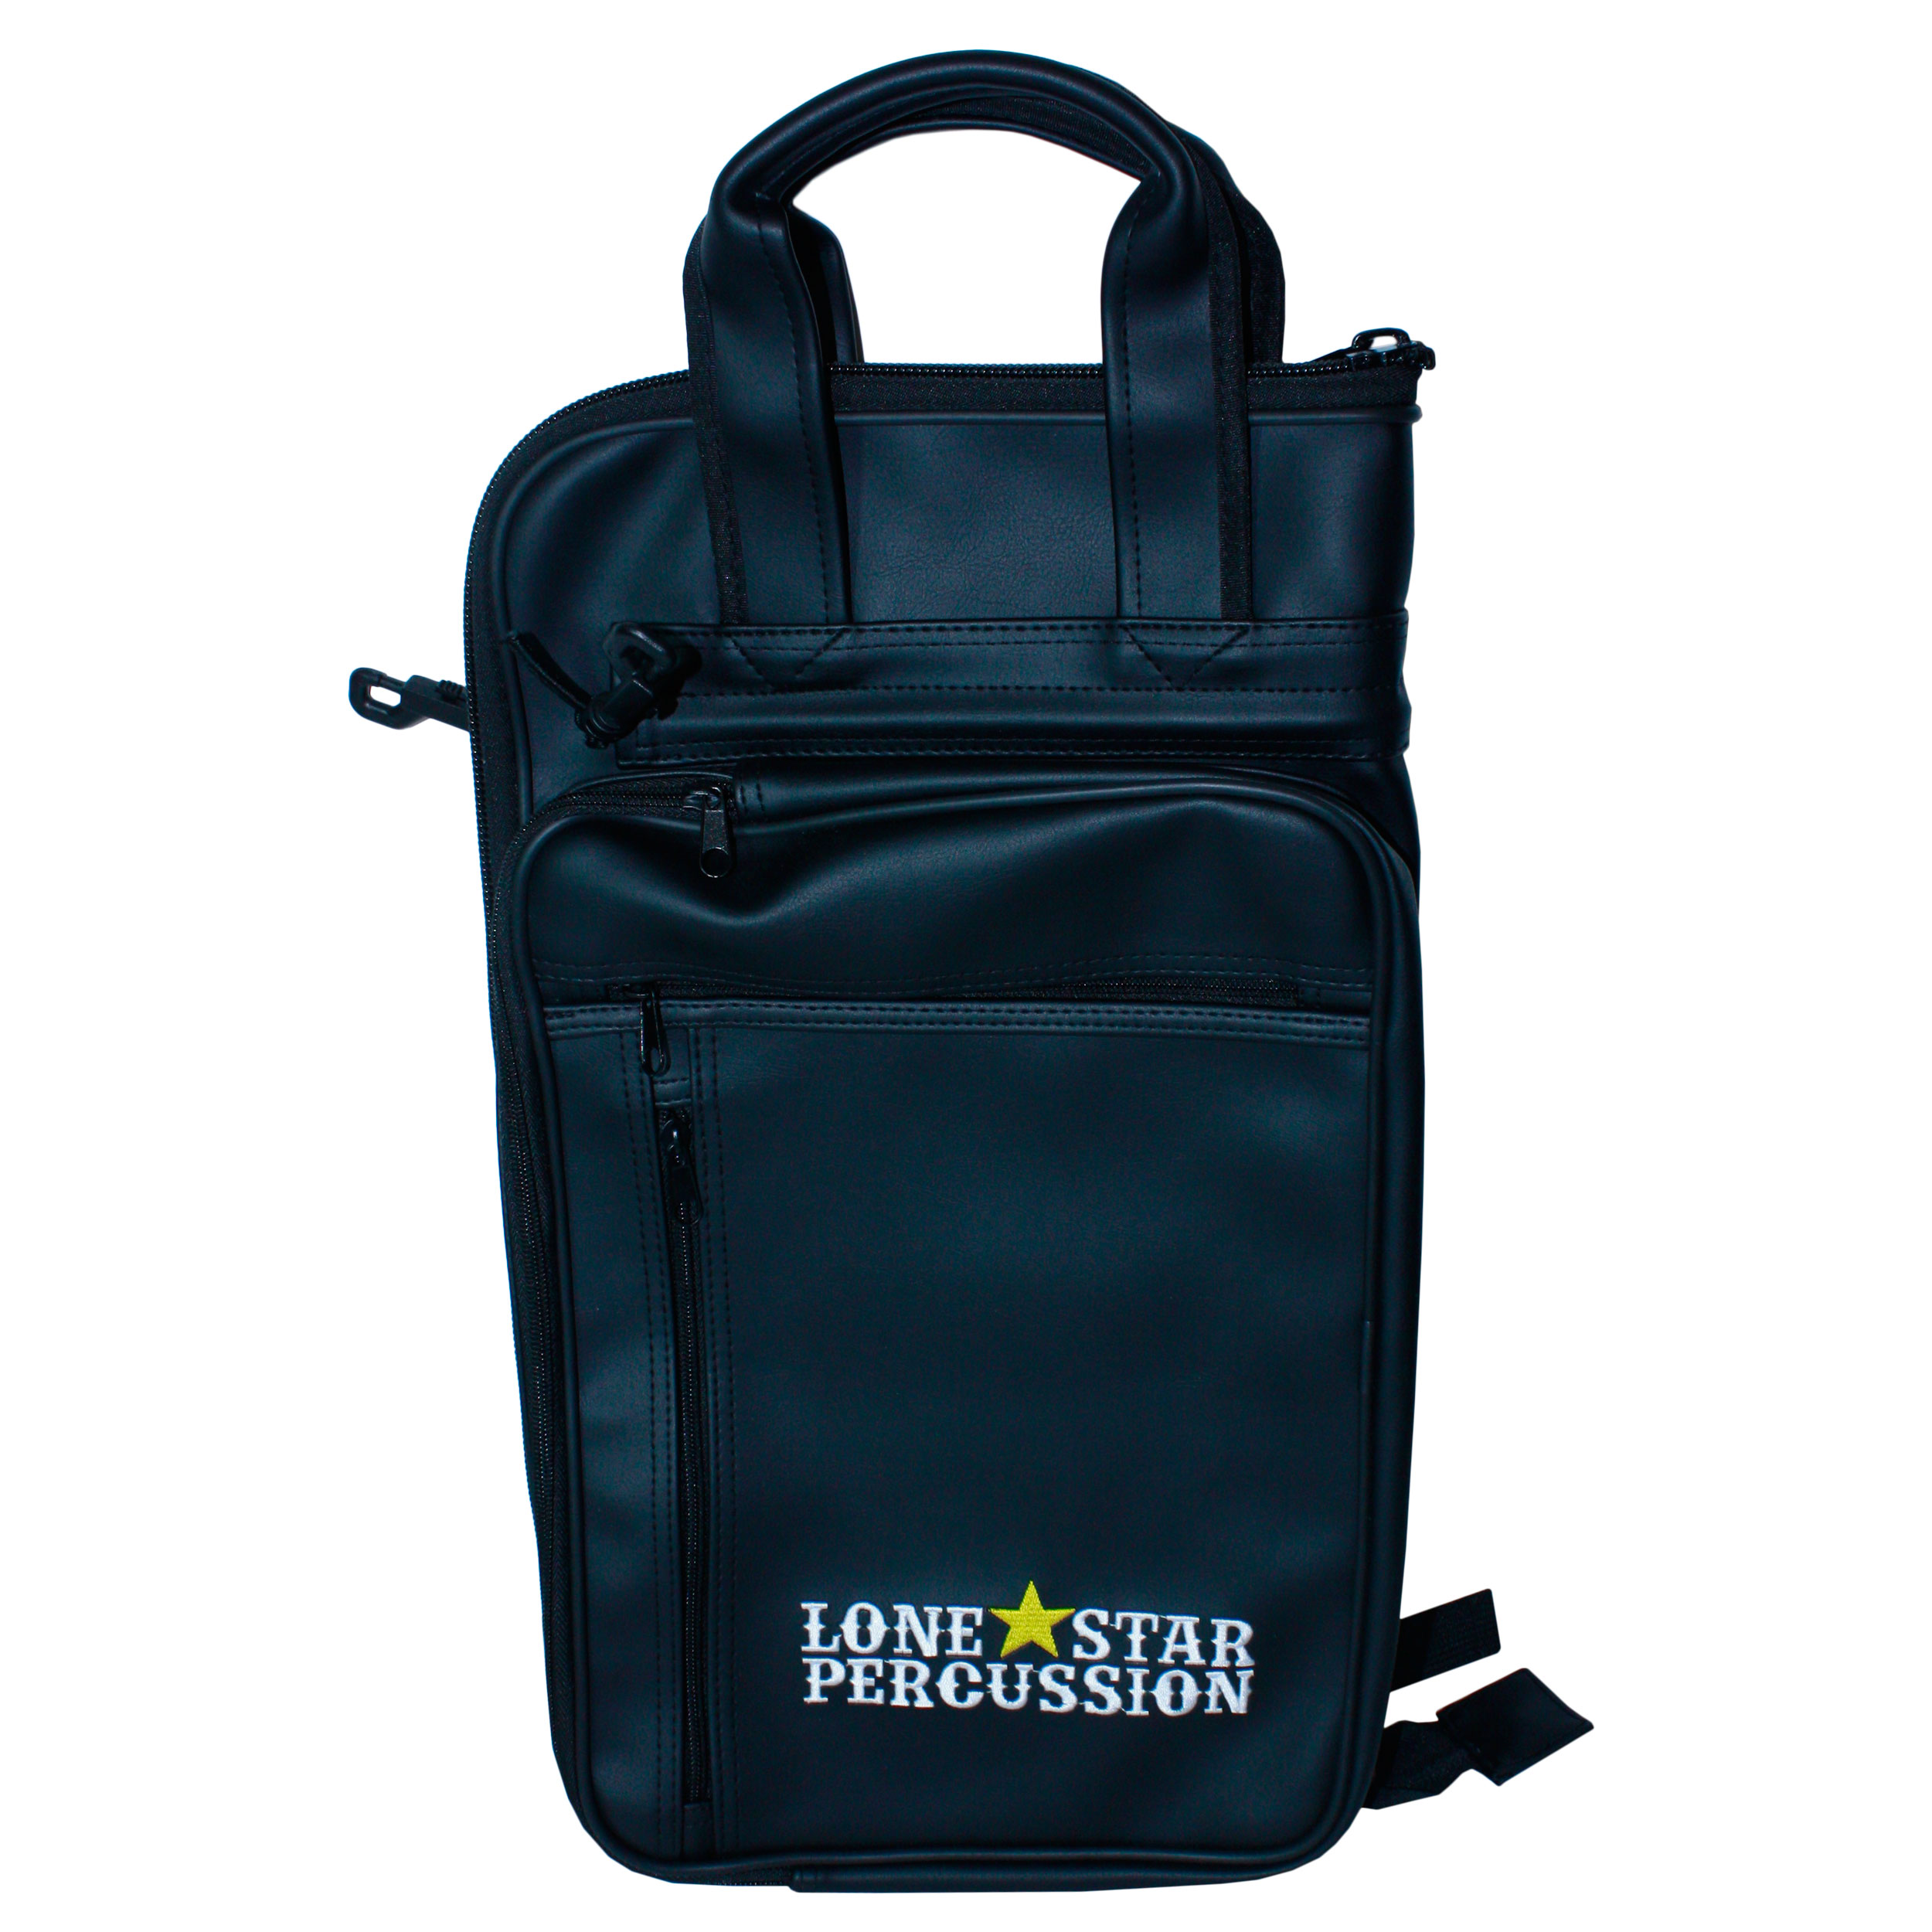 Lone Star Percussion Synthetic Leather Pro Stick Bag